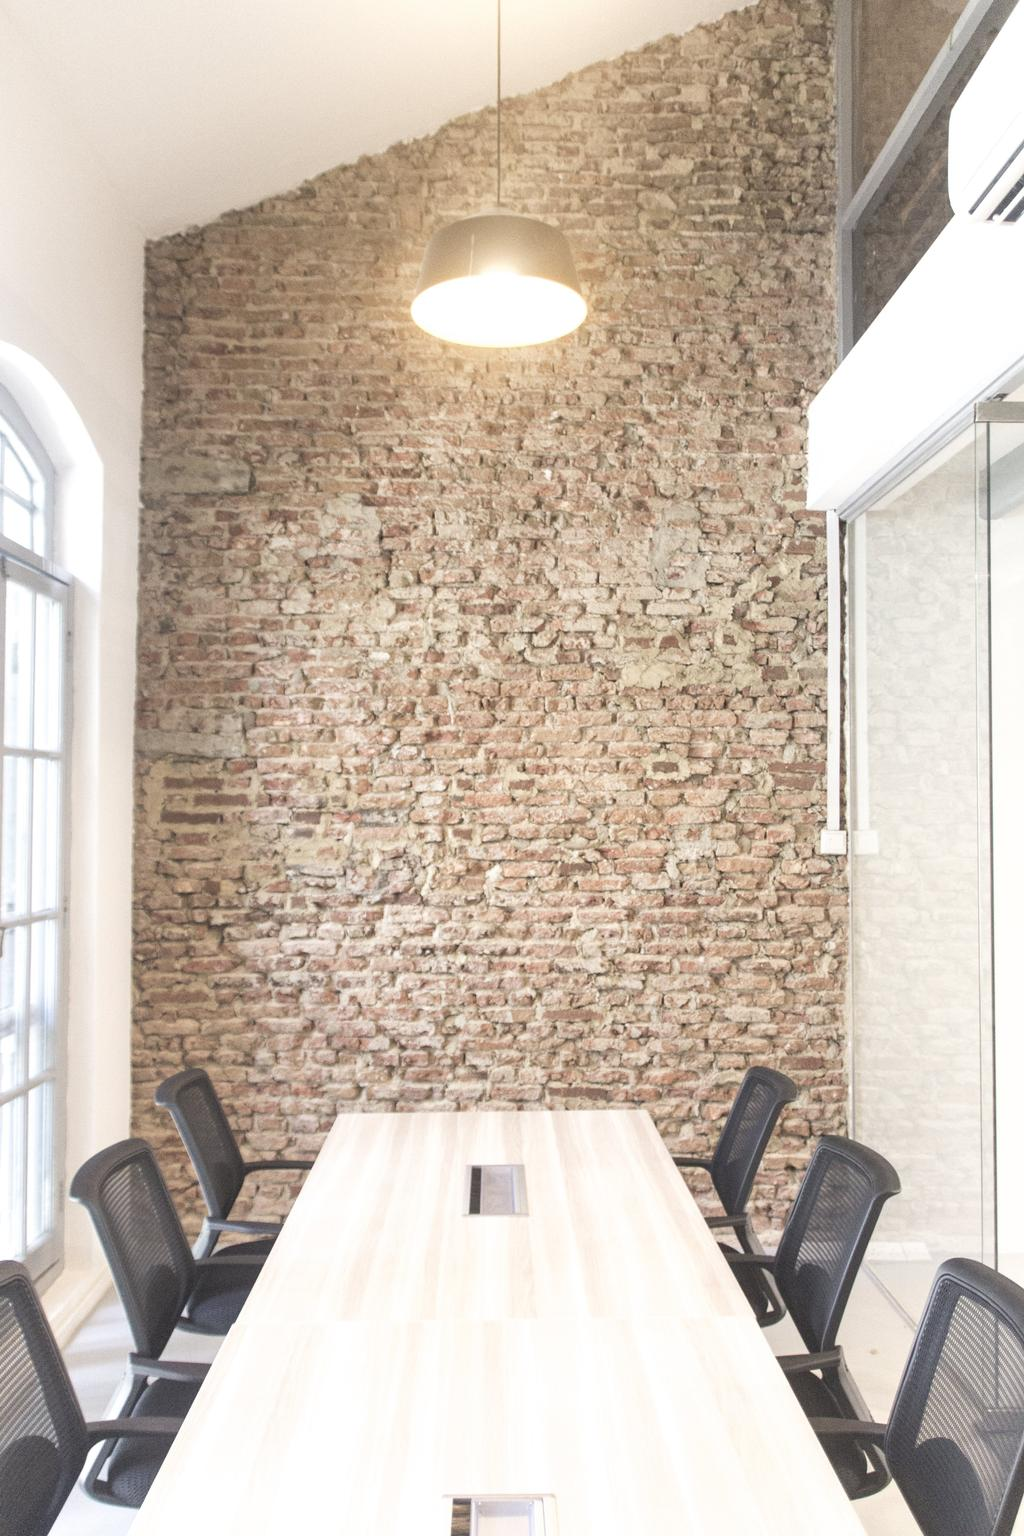 19 Cantonment, Commercial, Architect, PROVOLK ARCHITECTS, Modern, Meeting Room, Brick Wall, Unfinished, Office Chairs, Conference Room, Boardroom, High Ceiling, Brick